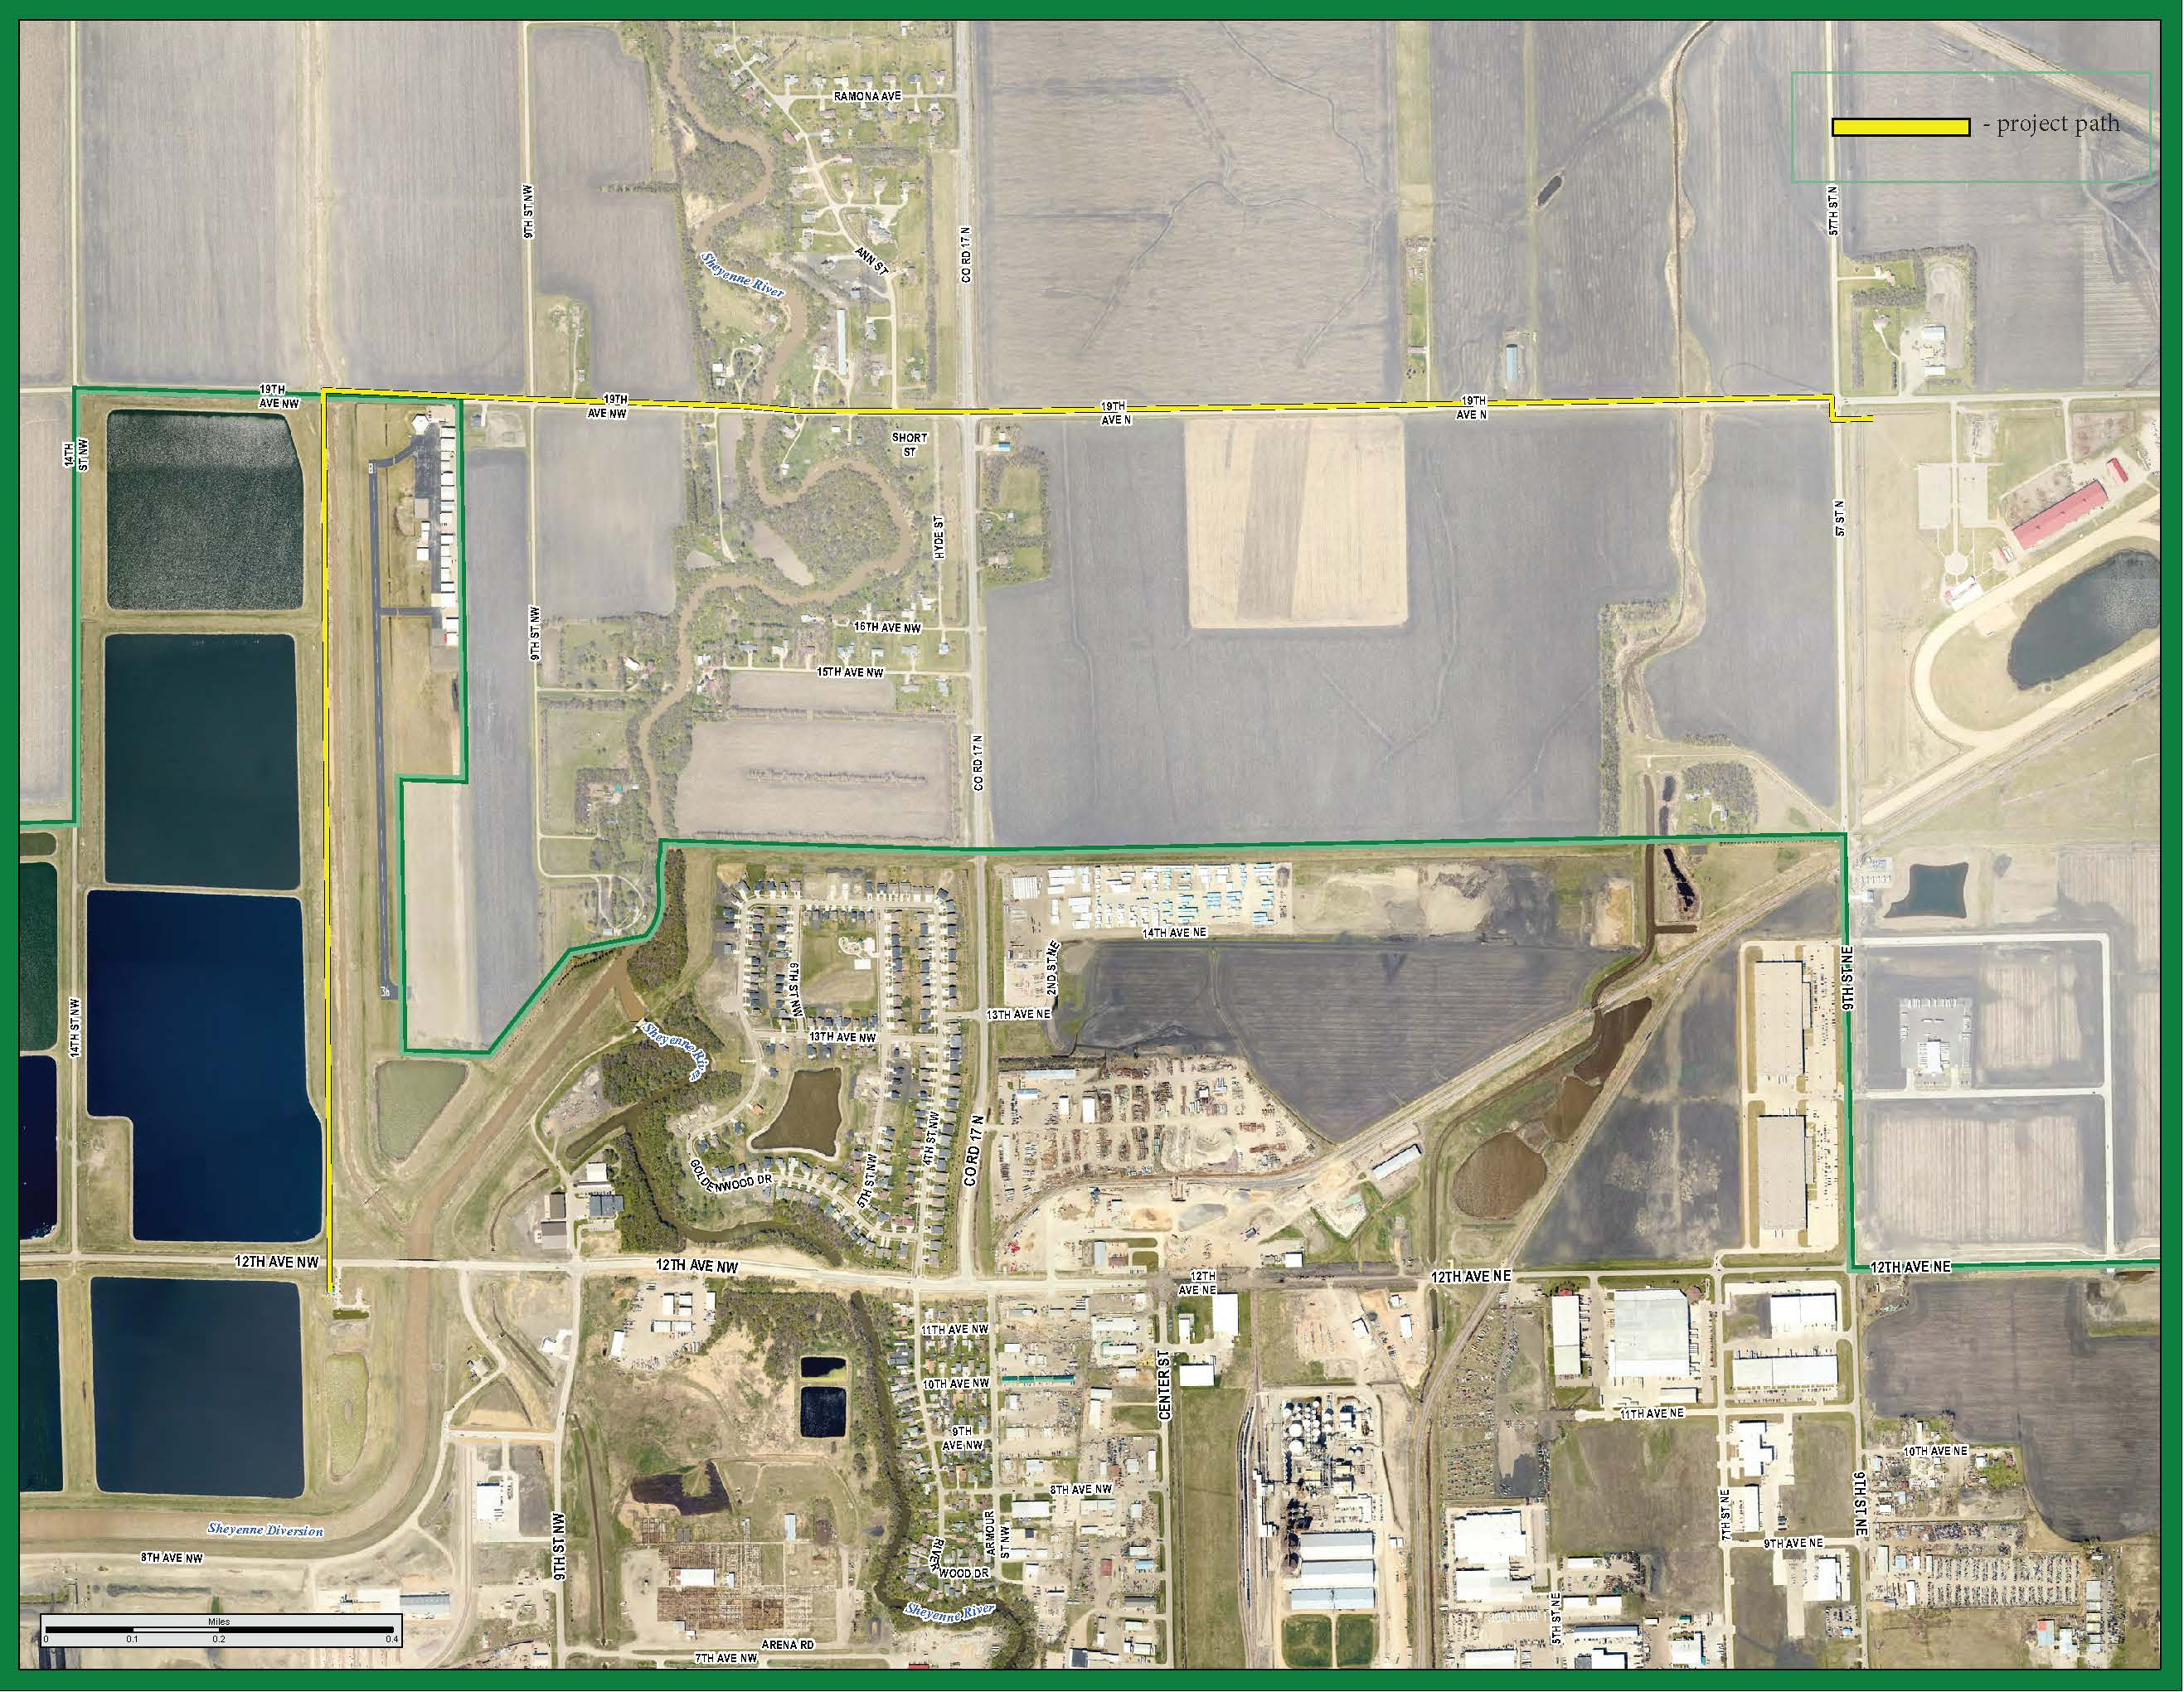 Fargo Waste Connection project map